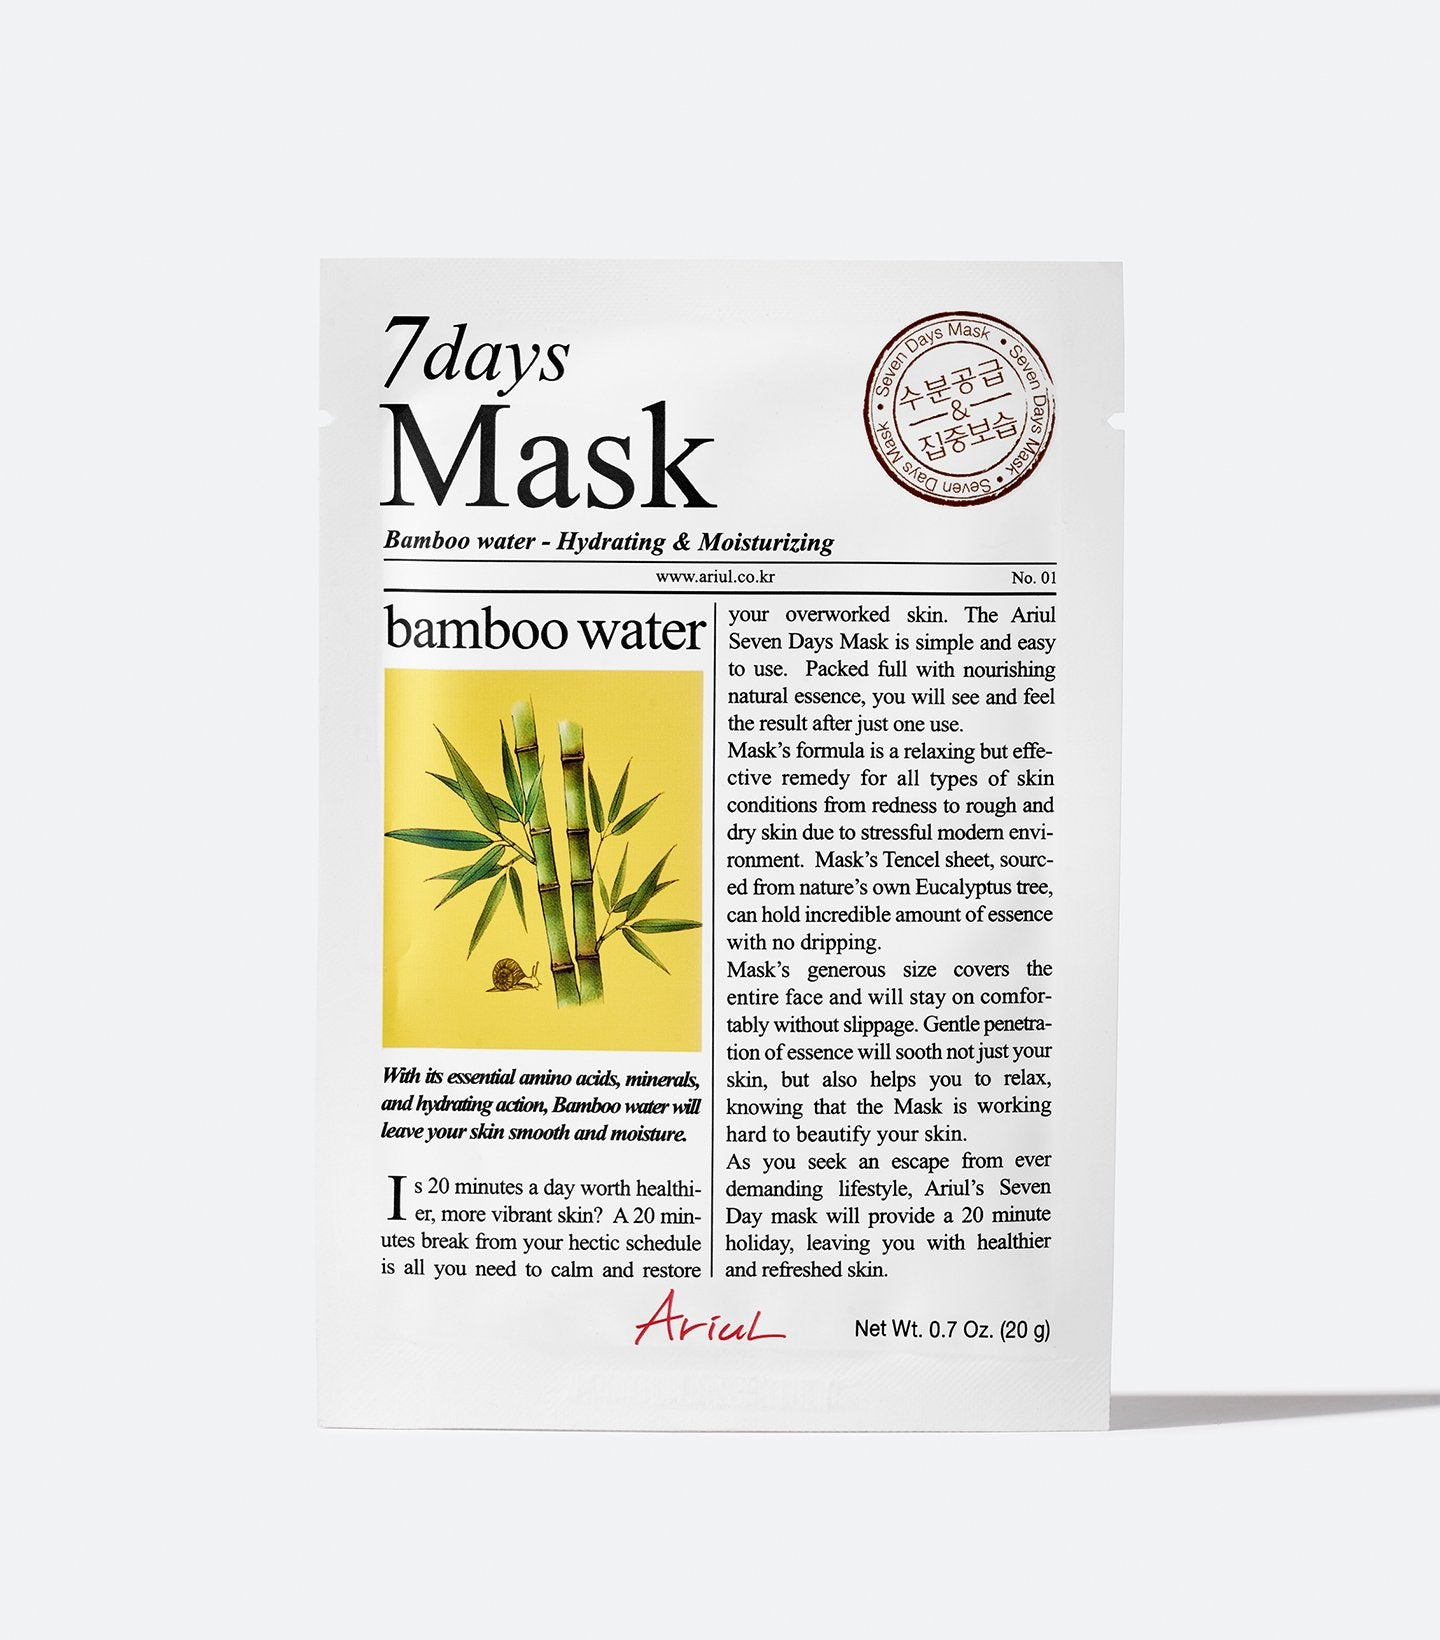 Bamboo Water 7 Days Mask